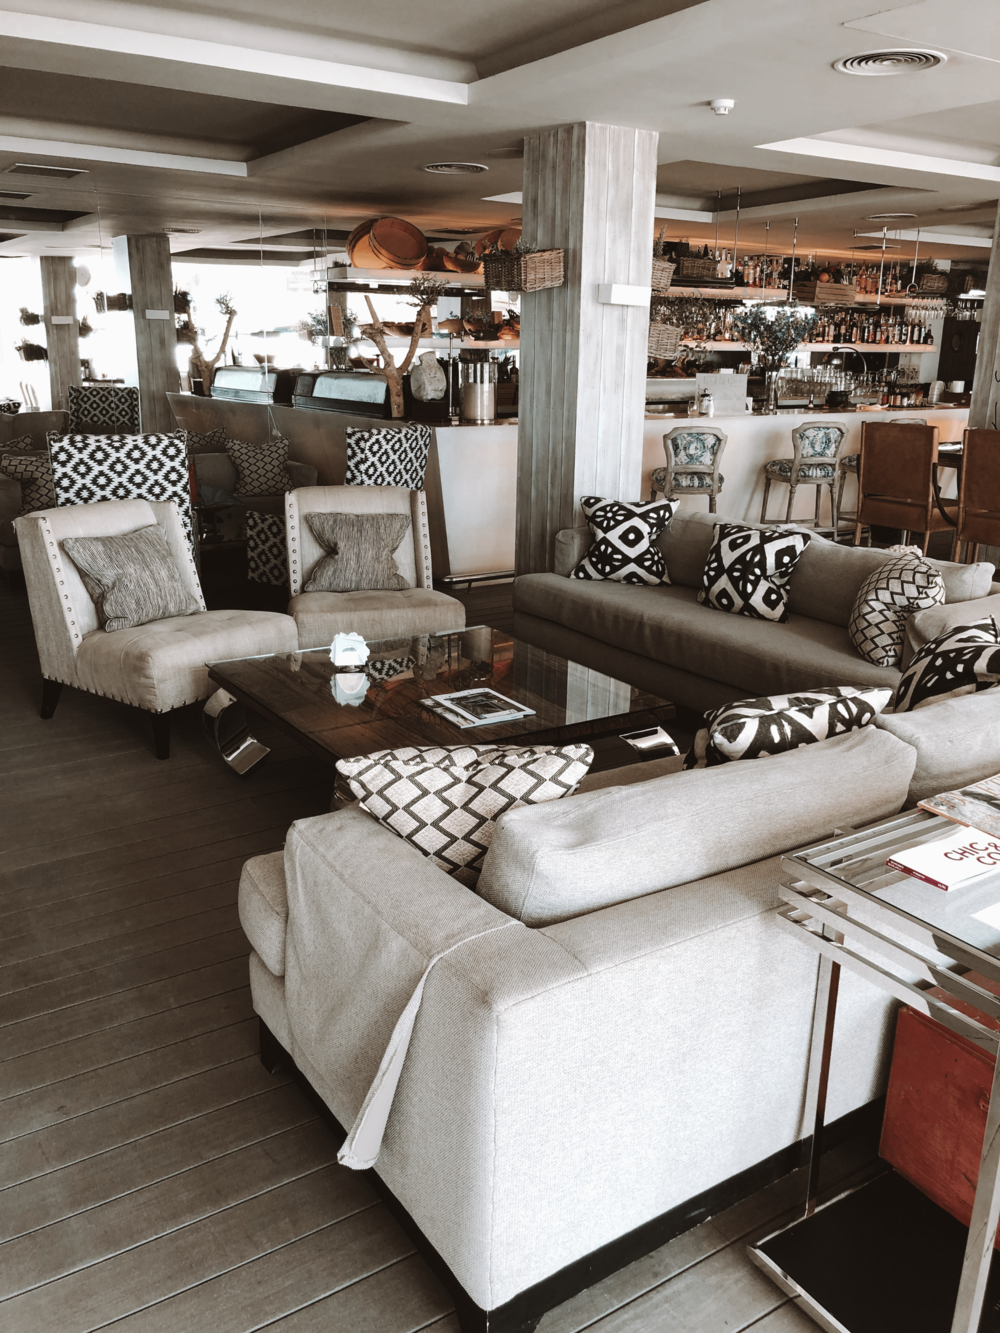 Beautiful rustic-chic interiors at the Sea Grill restaurant.